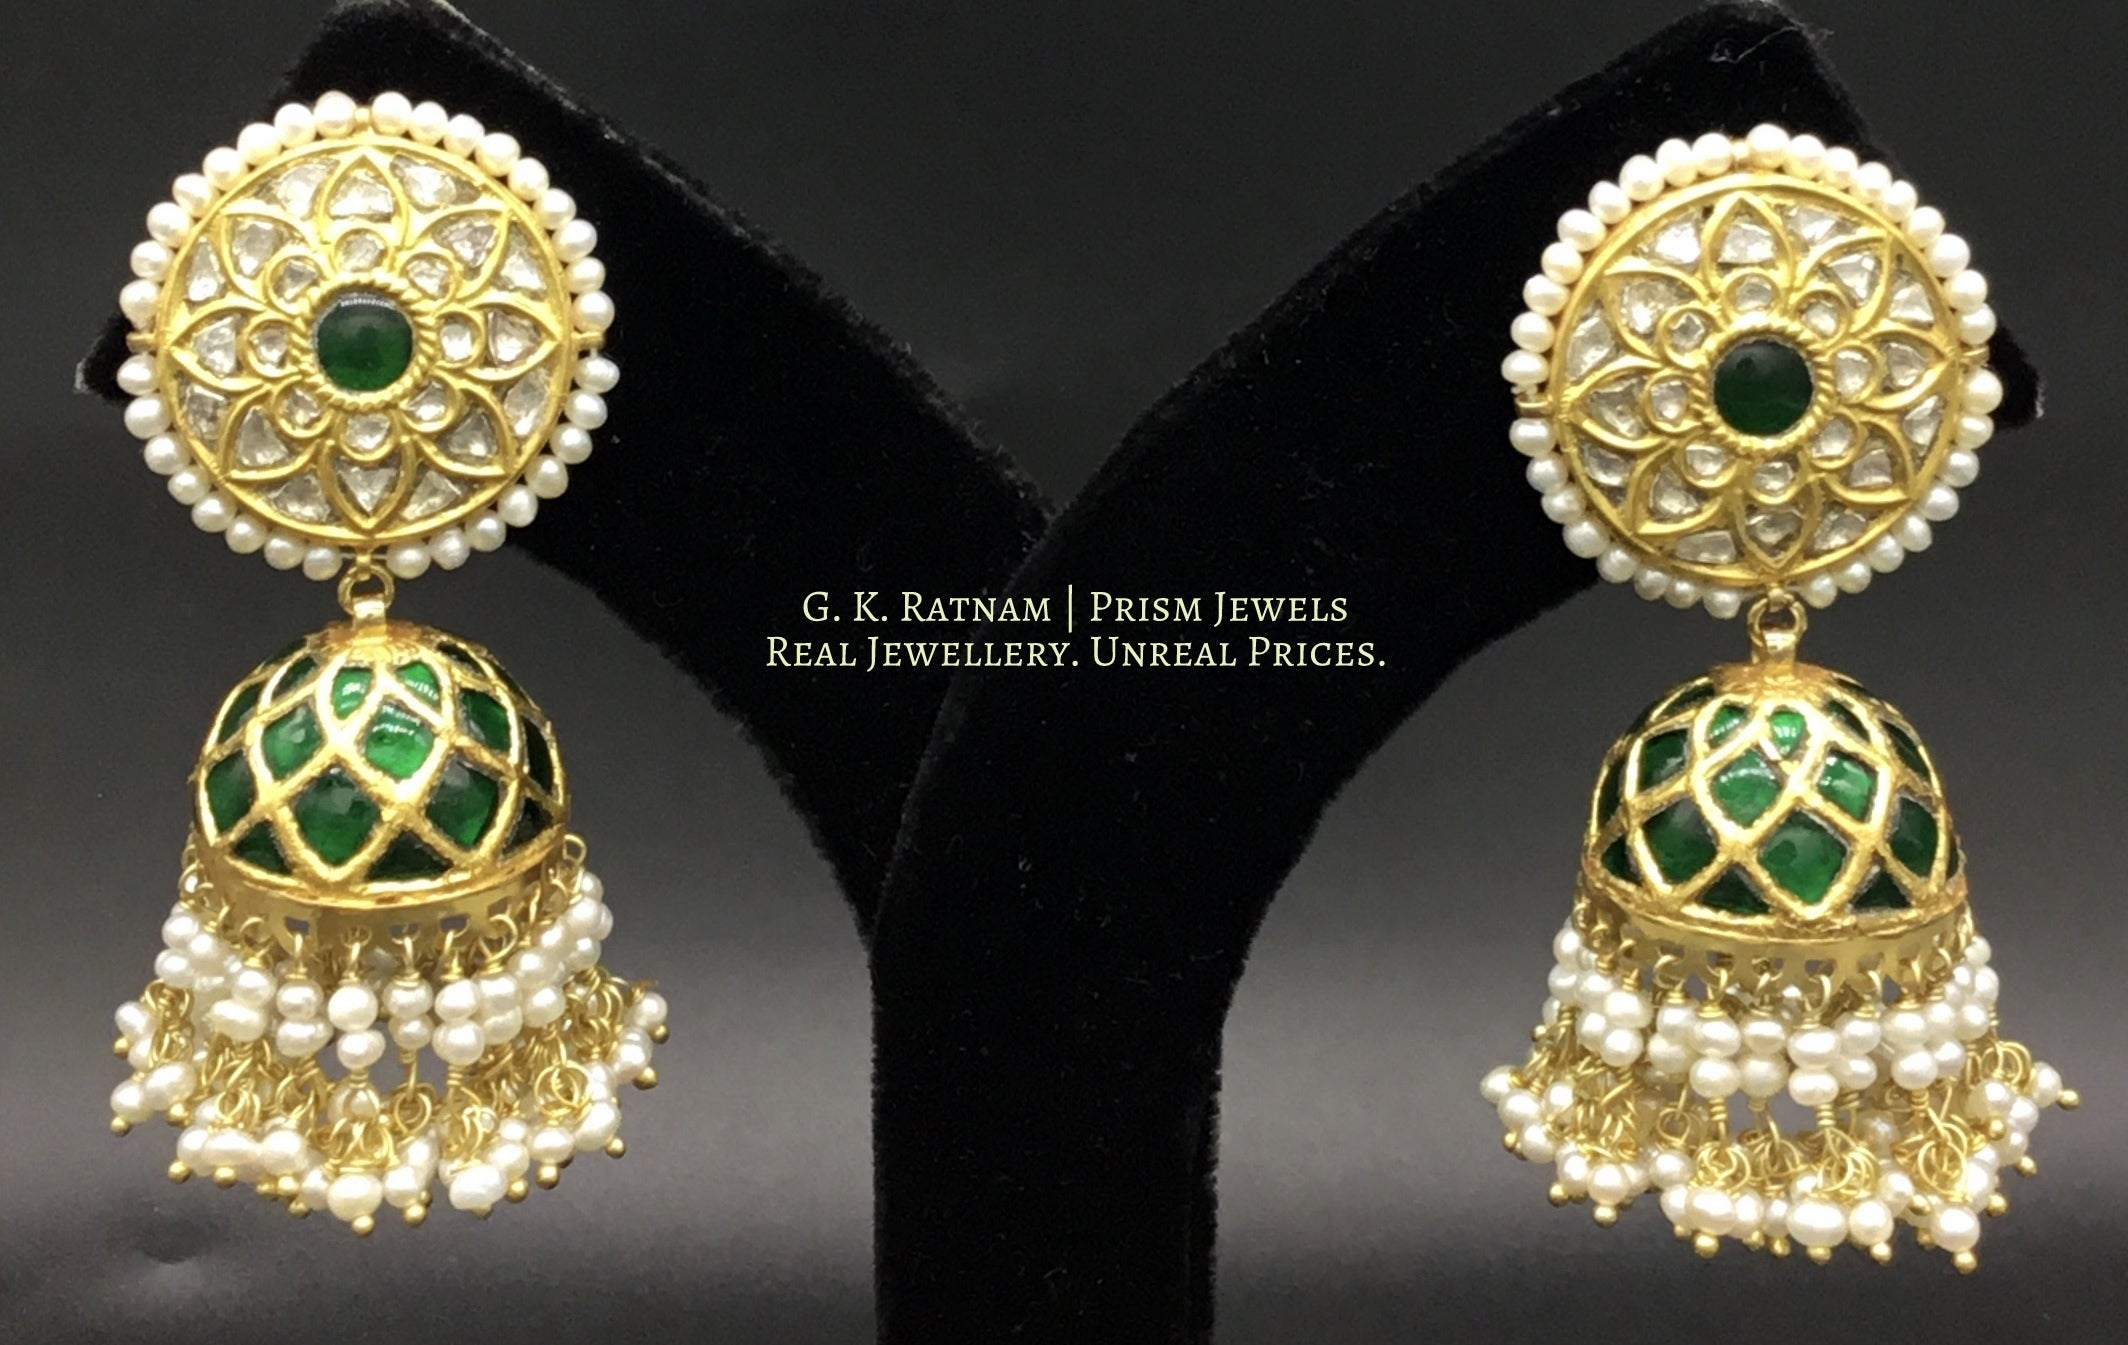 23k Gold and Diamond Polki Jhumki Earrings set with emerald-green stones and enhanced with Freshwater Pearls